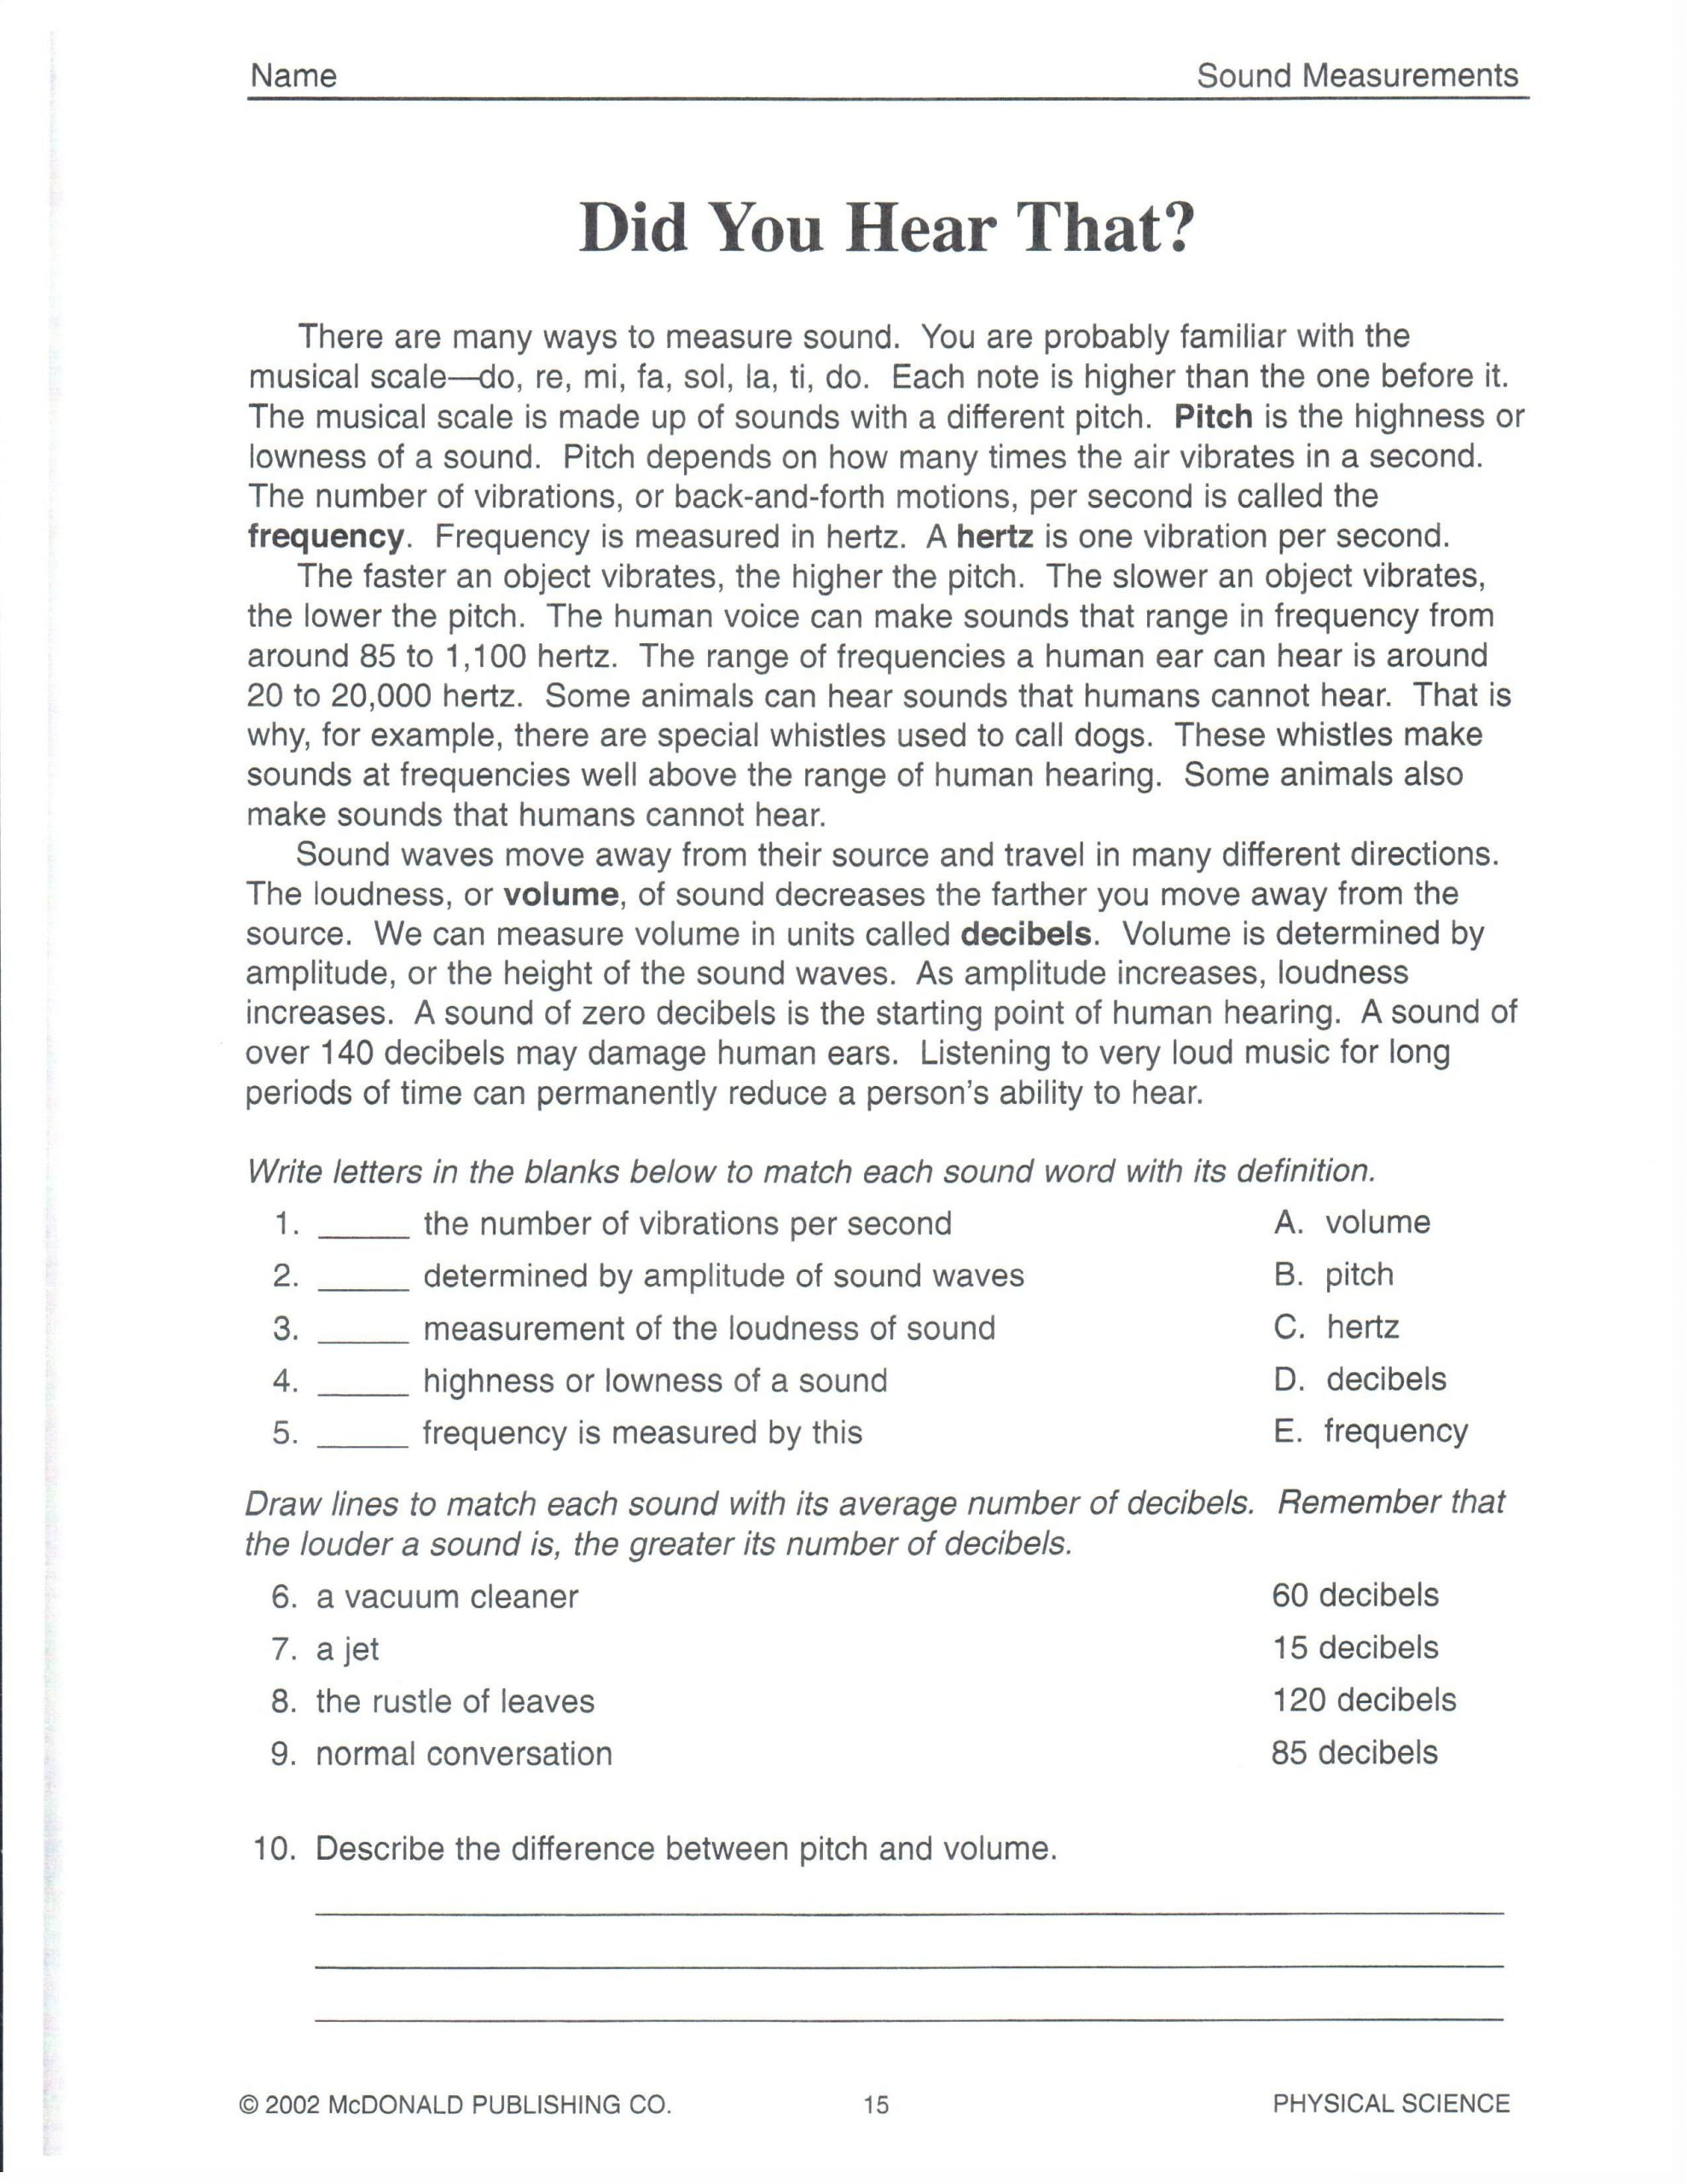 Science Worksheets 7th Grade Physical Science Did You Hear that 101roxm 2 550—3 300